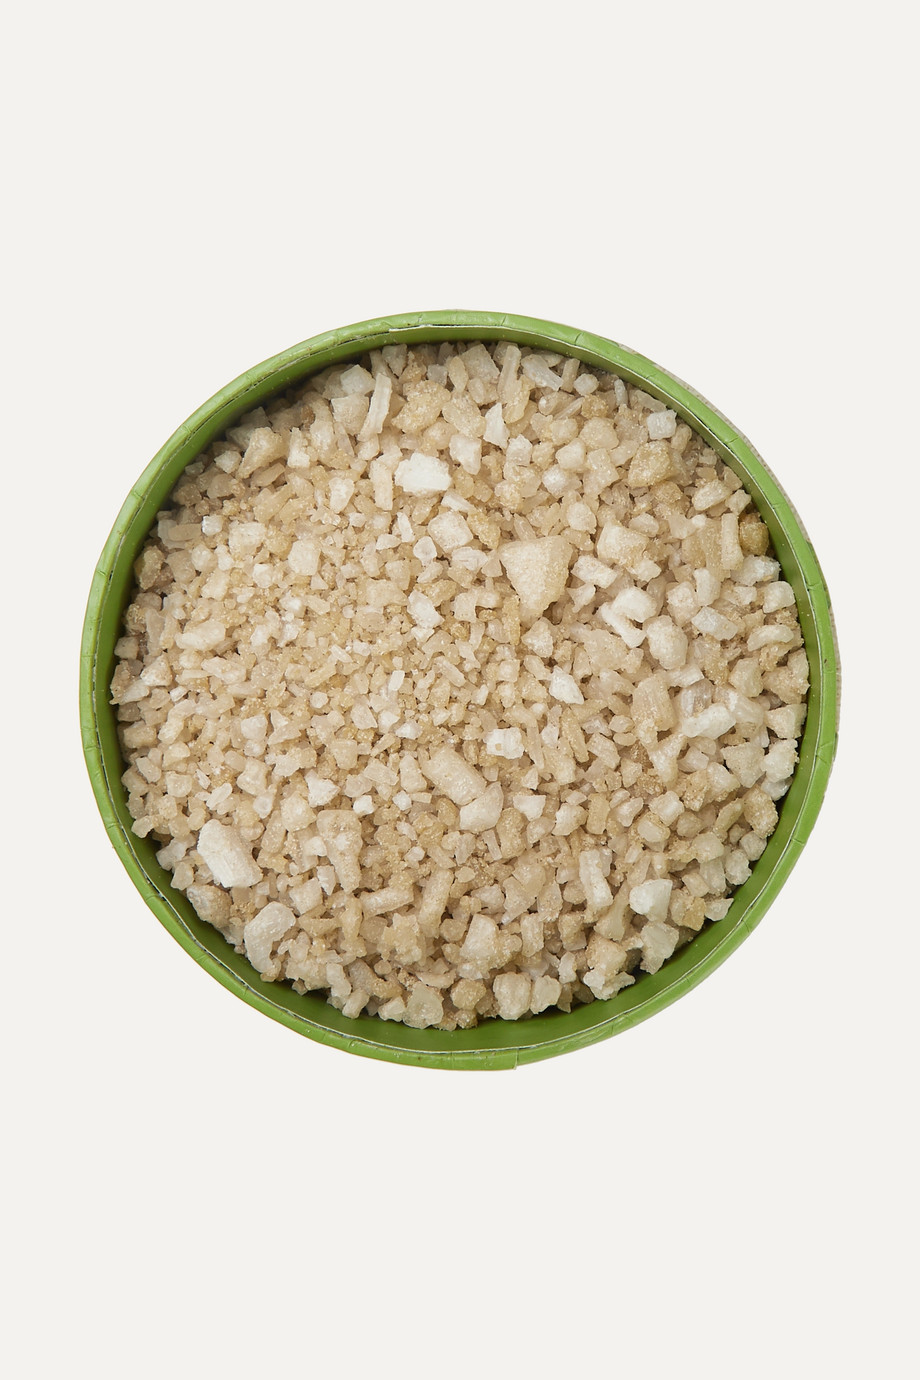 SEED TO SKIN The Retreat, 450g